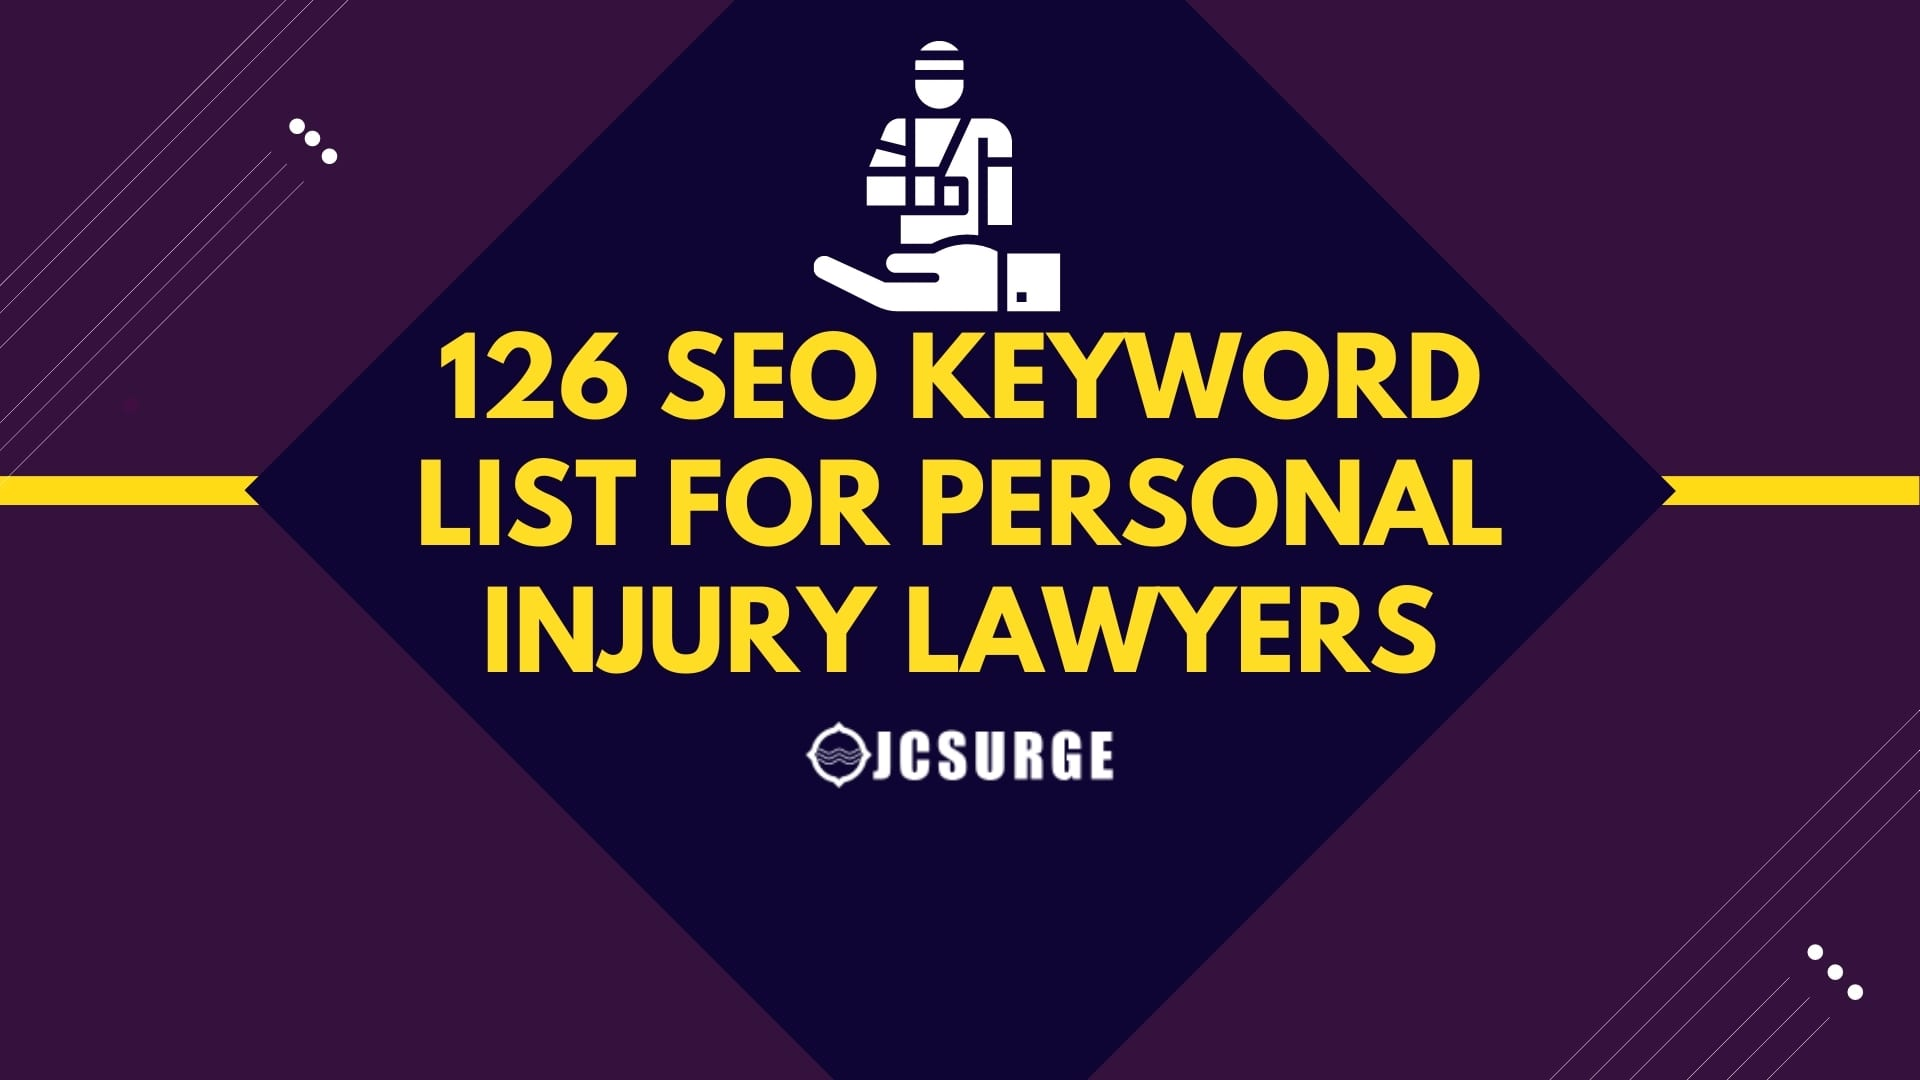 126 Keywords Personal Injury Lawyers Should Use on Their Website